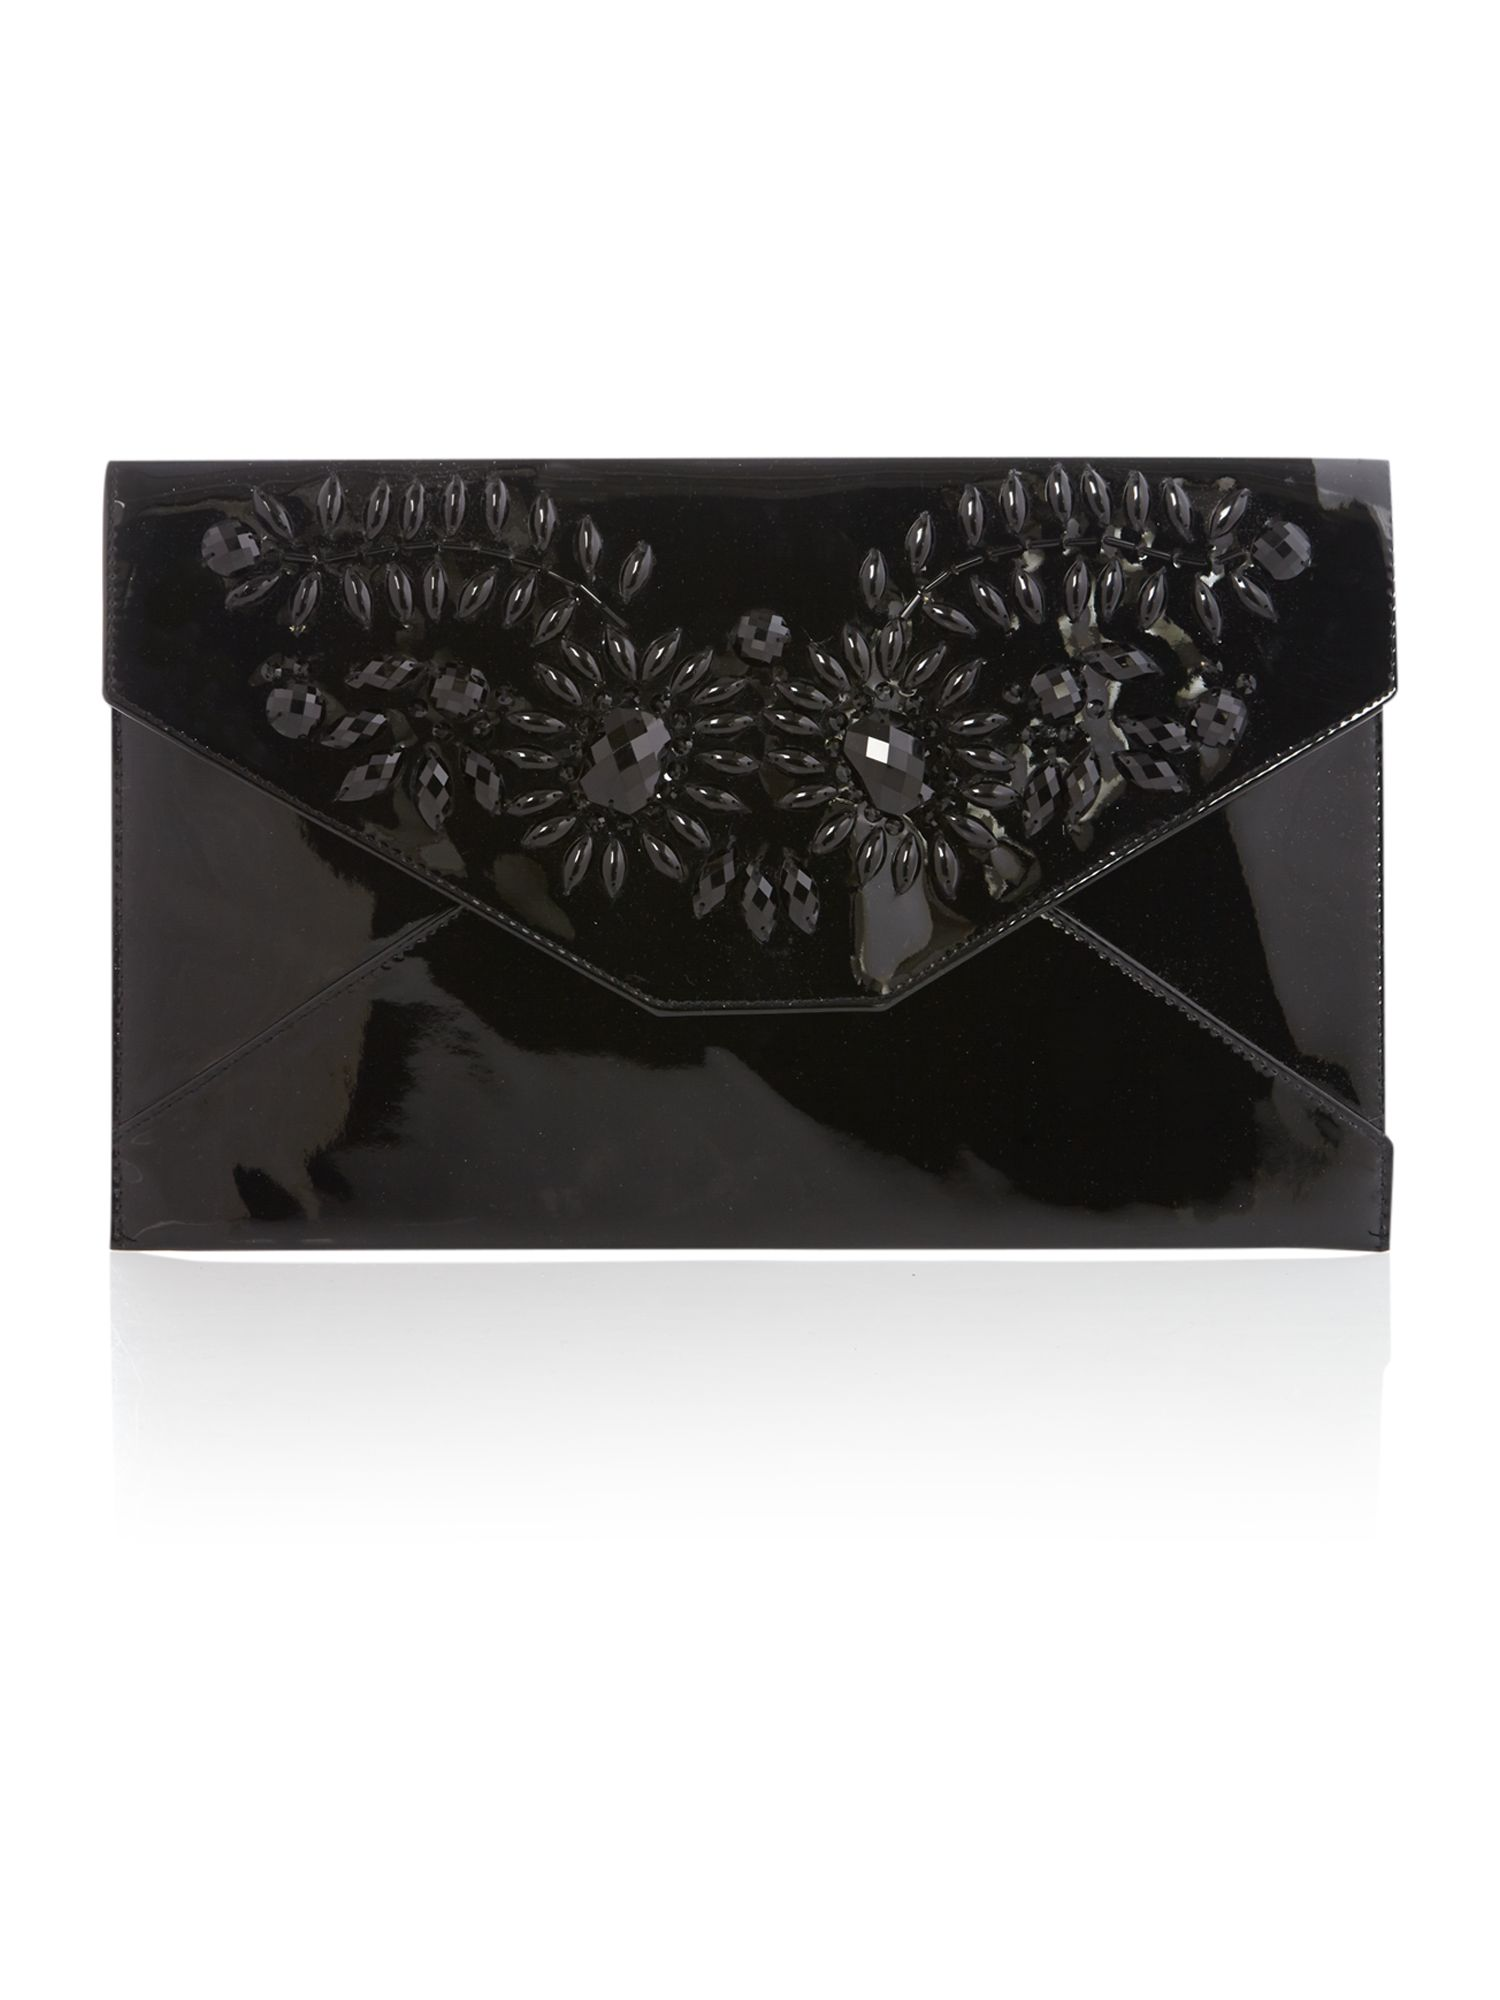 Jenna jewel clutch bag